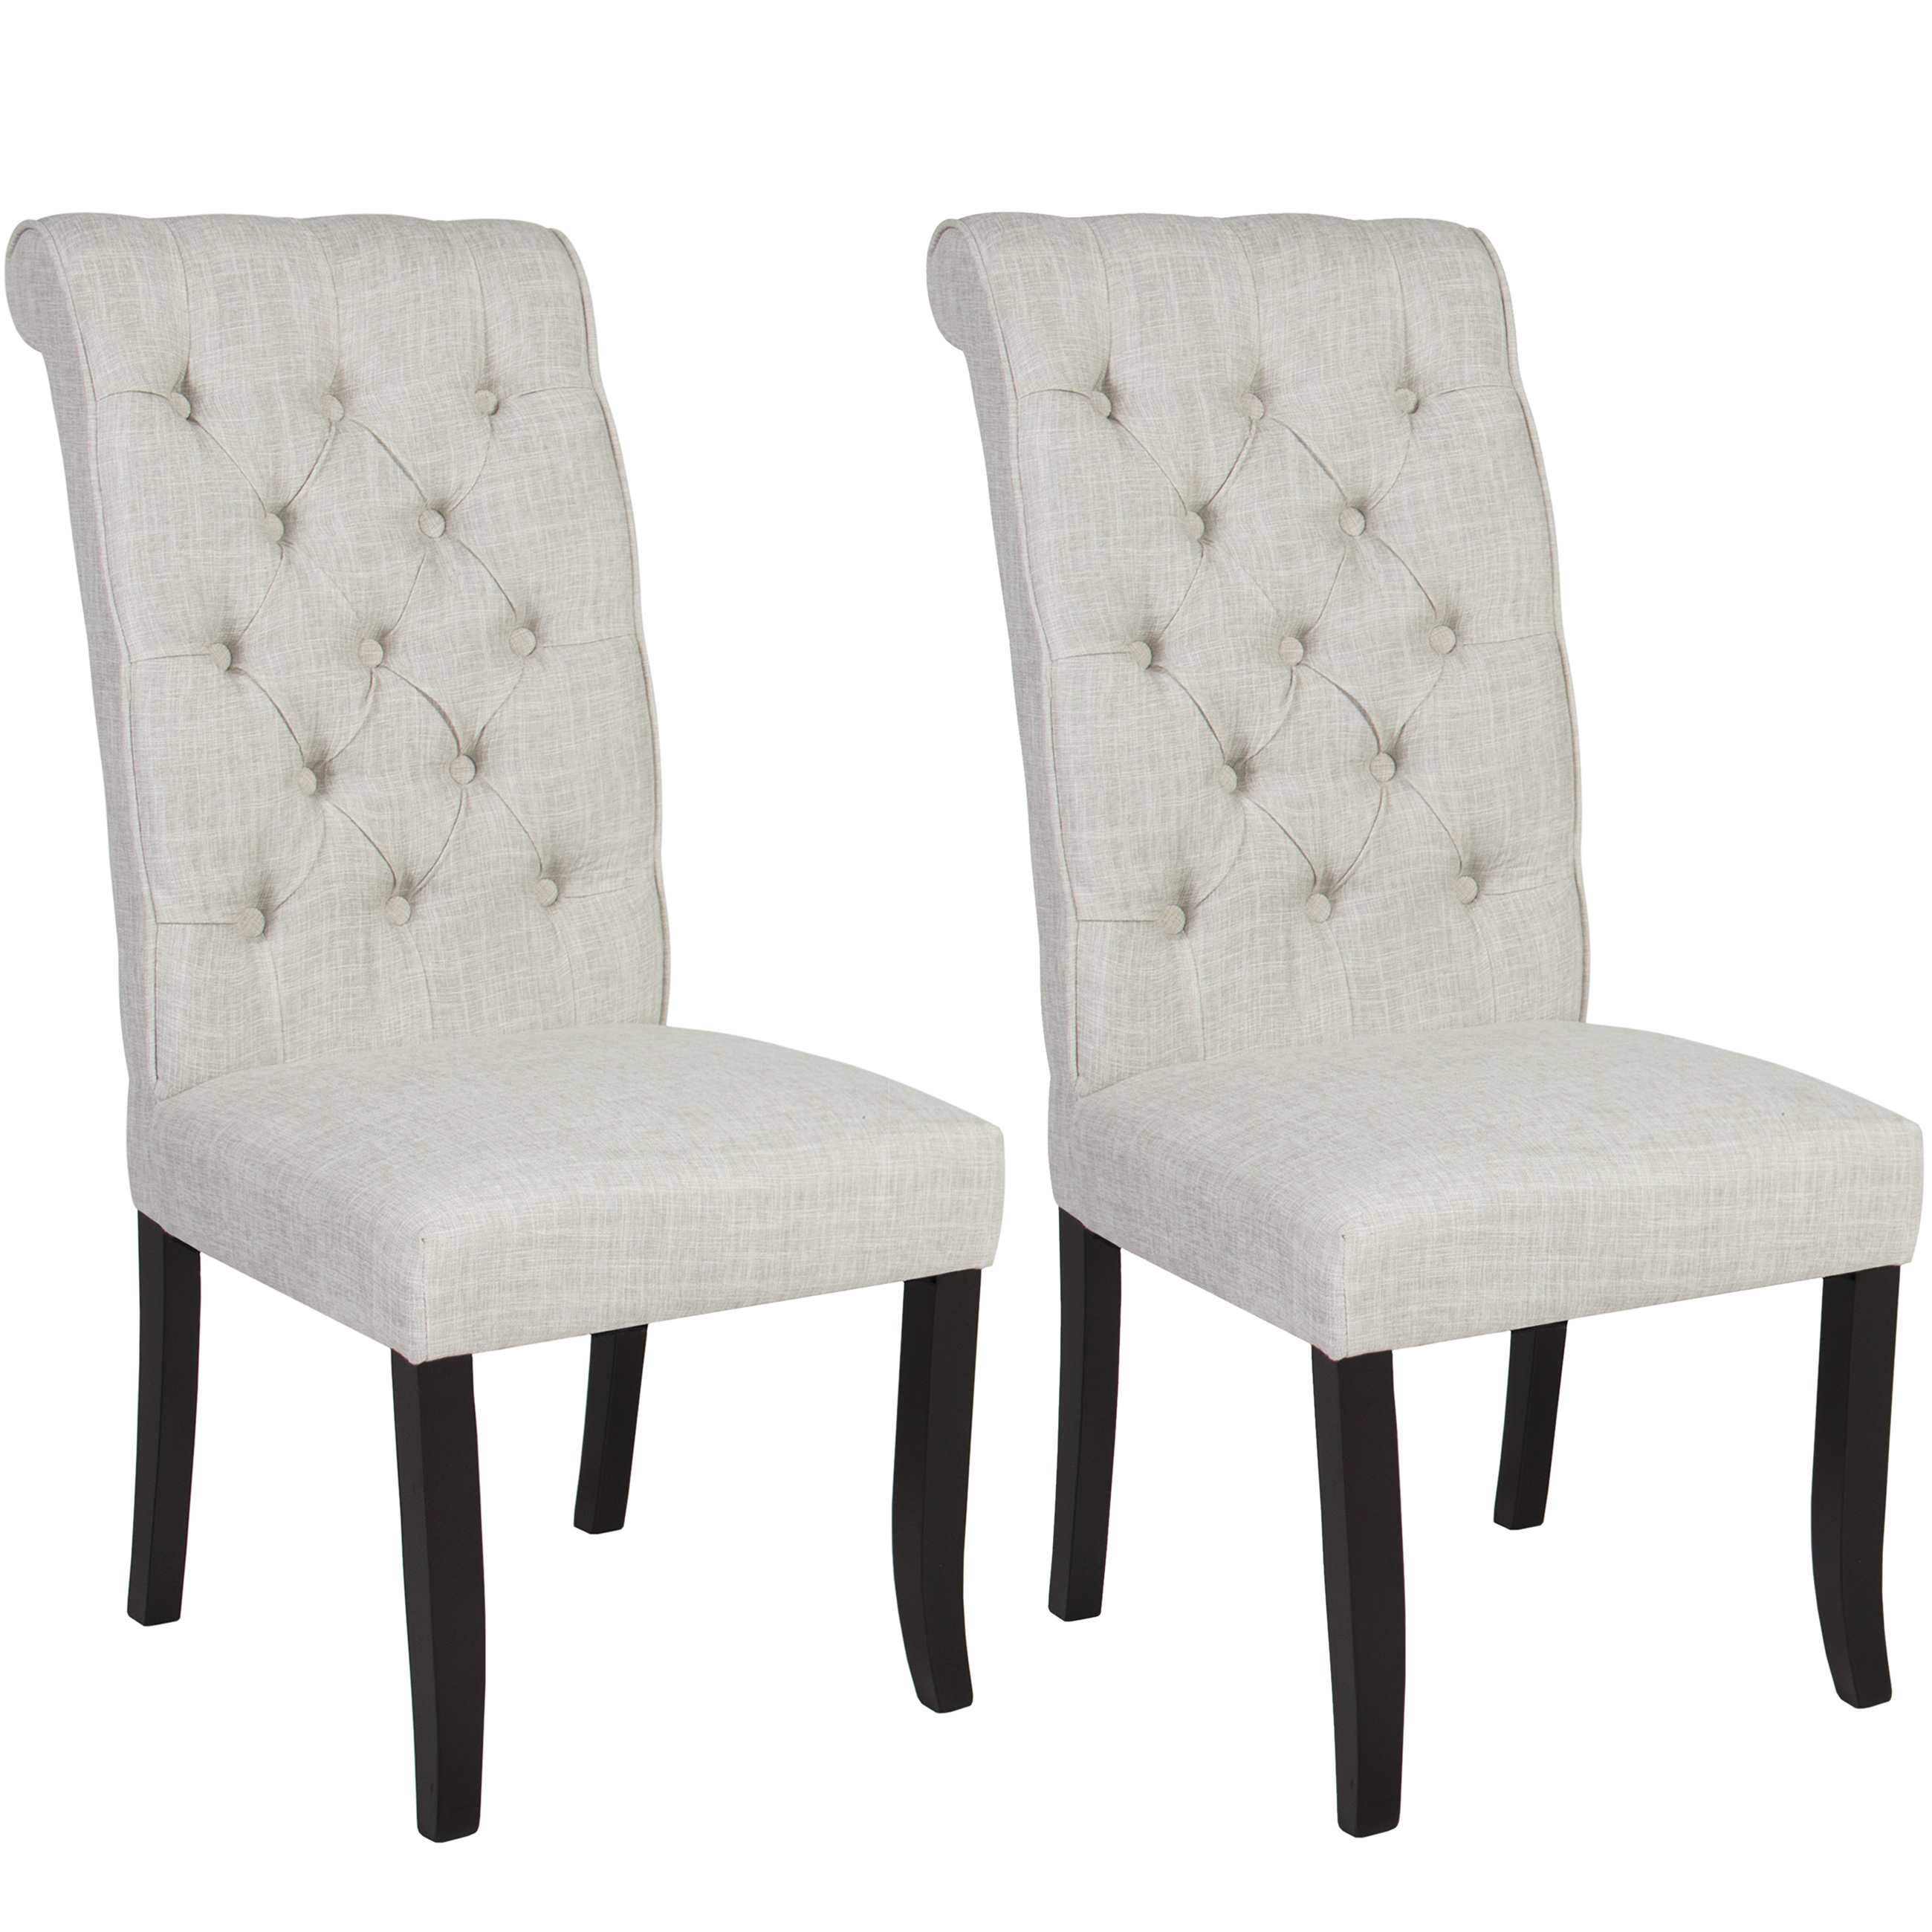 Best Choice Products Set of 2 Modern Linen Tufted Parsons Dining Side Chair Home Furniture w/ Wooden Frame - White